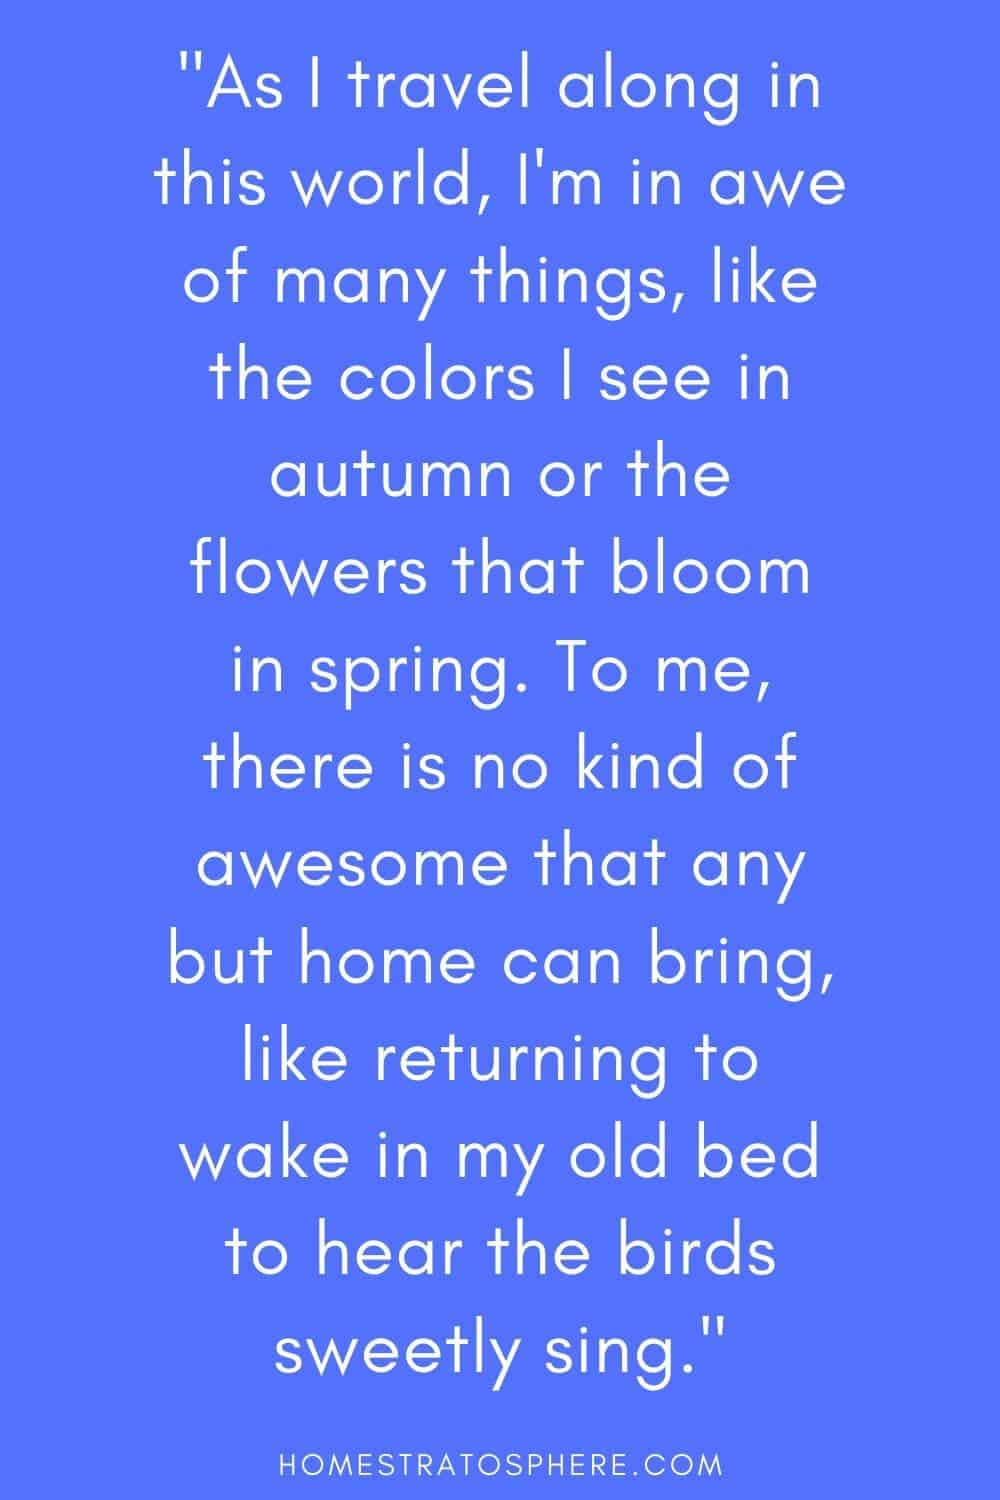 """""""As I travel along in this world, I'm in awe of many things, like the colors I see in autumn or the flowers that bloom in spring. To me, there is no kind of awesome that any but home can bring, like returning to wake in my old bed to hear the birds sweetly sing."""""""